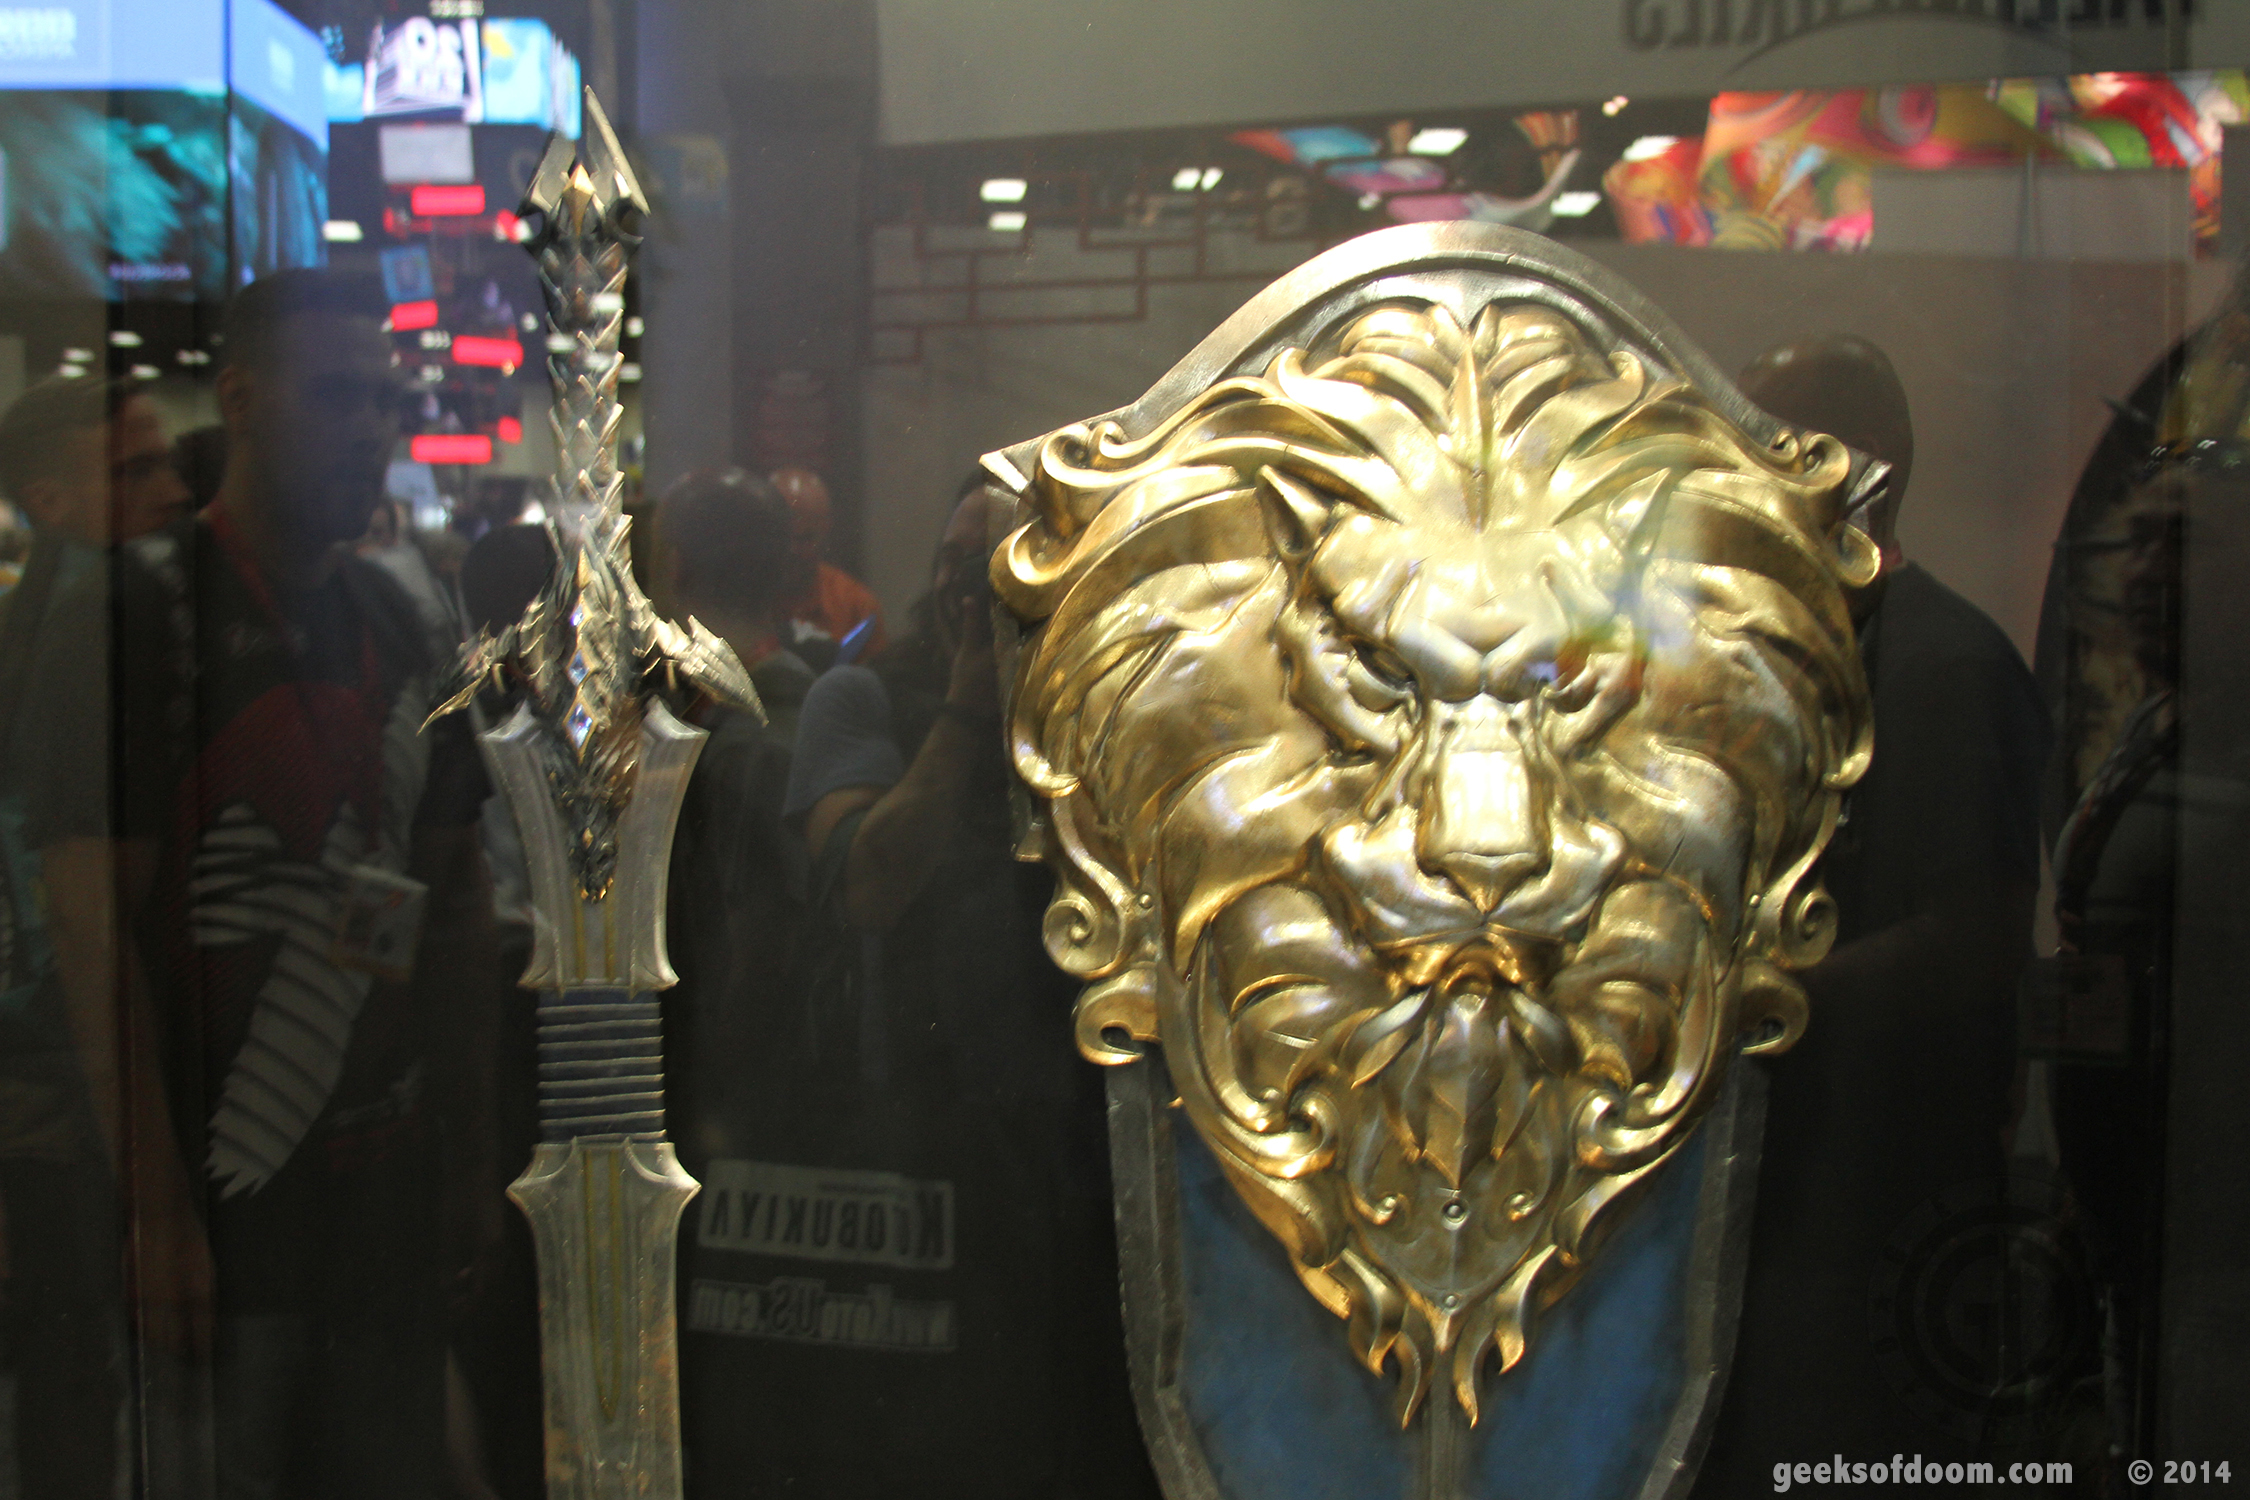 sdcc 2014 legendary booth warcraft dragon sword and lion